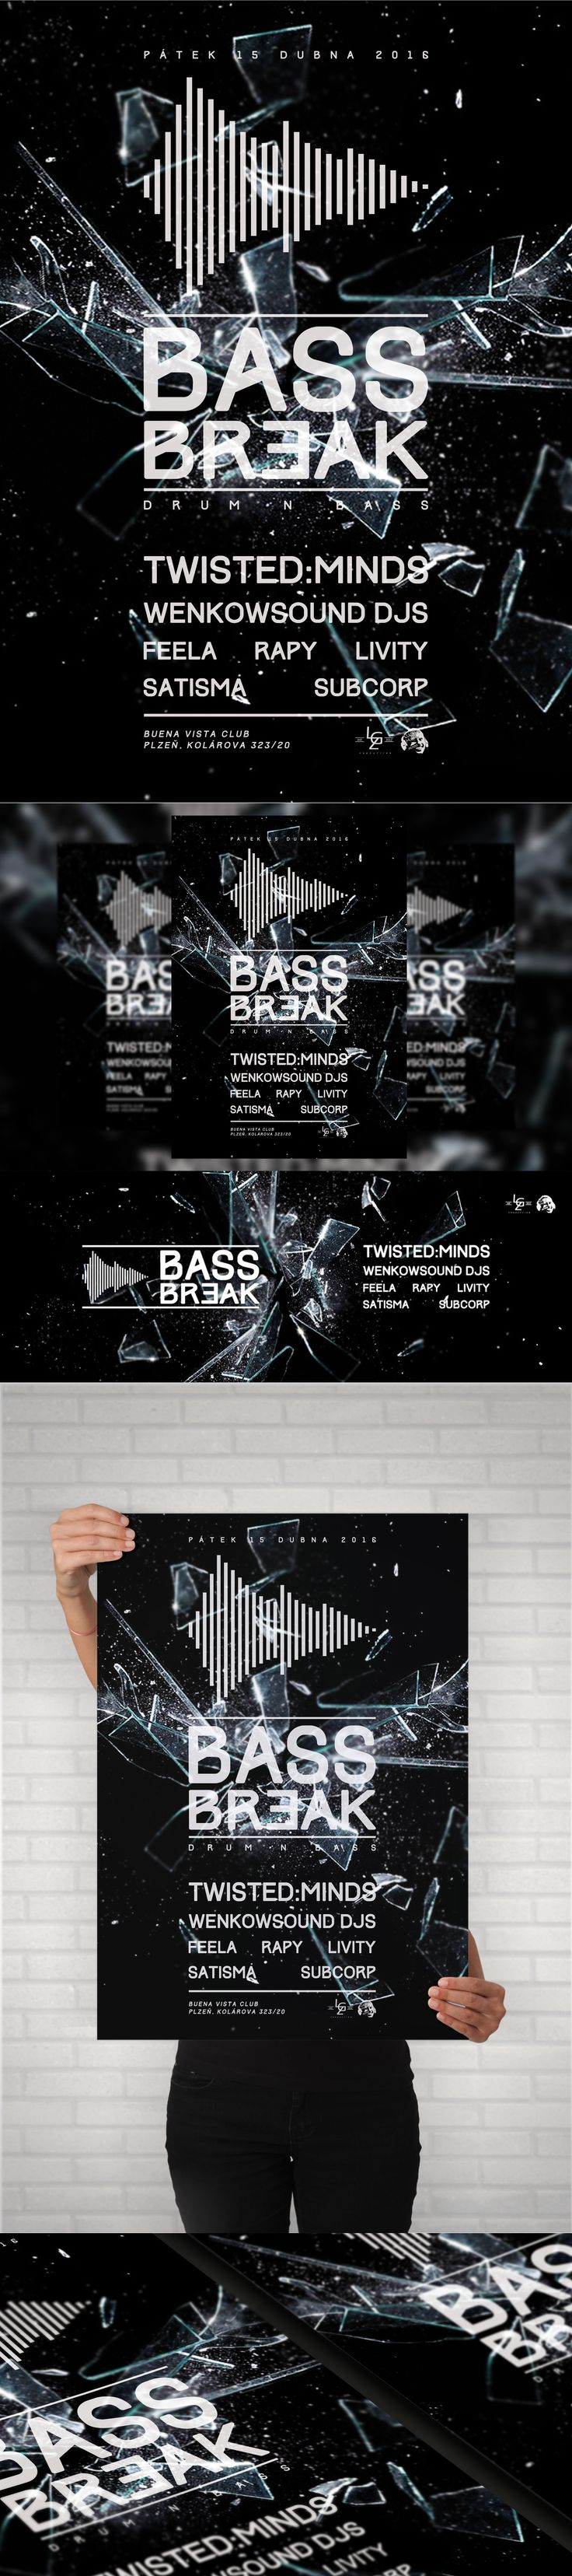 Bass Break Electronic music event - A4 Poster, Facebook event header and preview. #poster #posterdesign #fbheader #graphicdesign